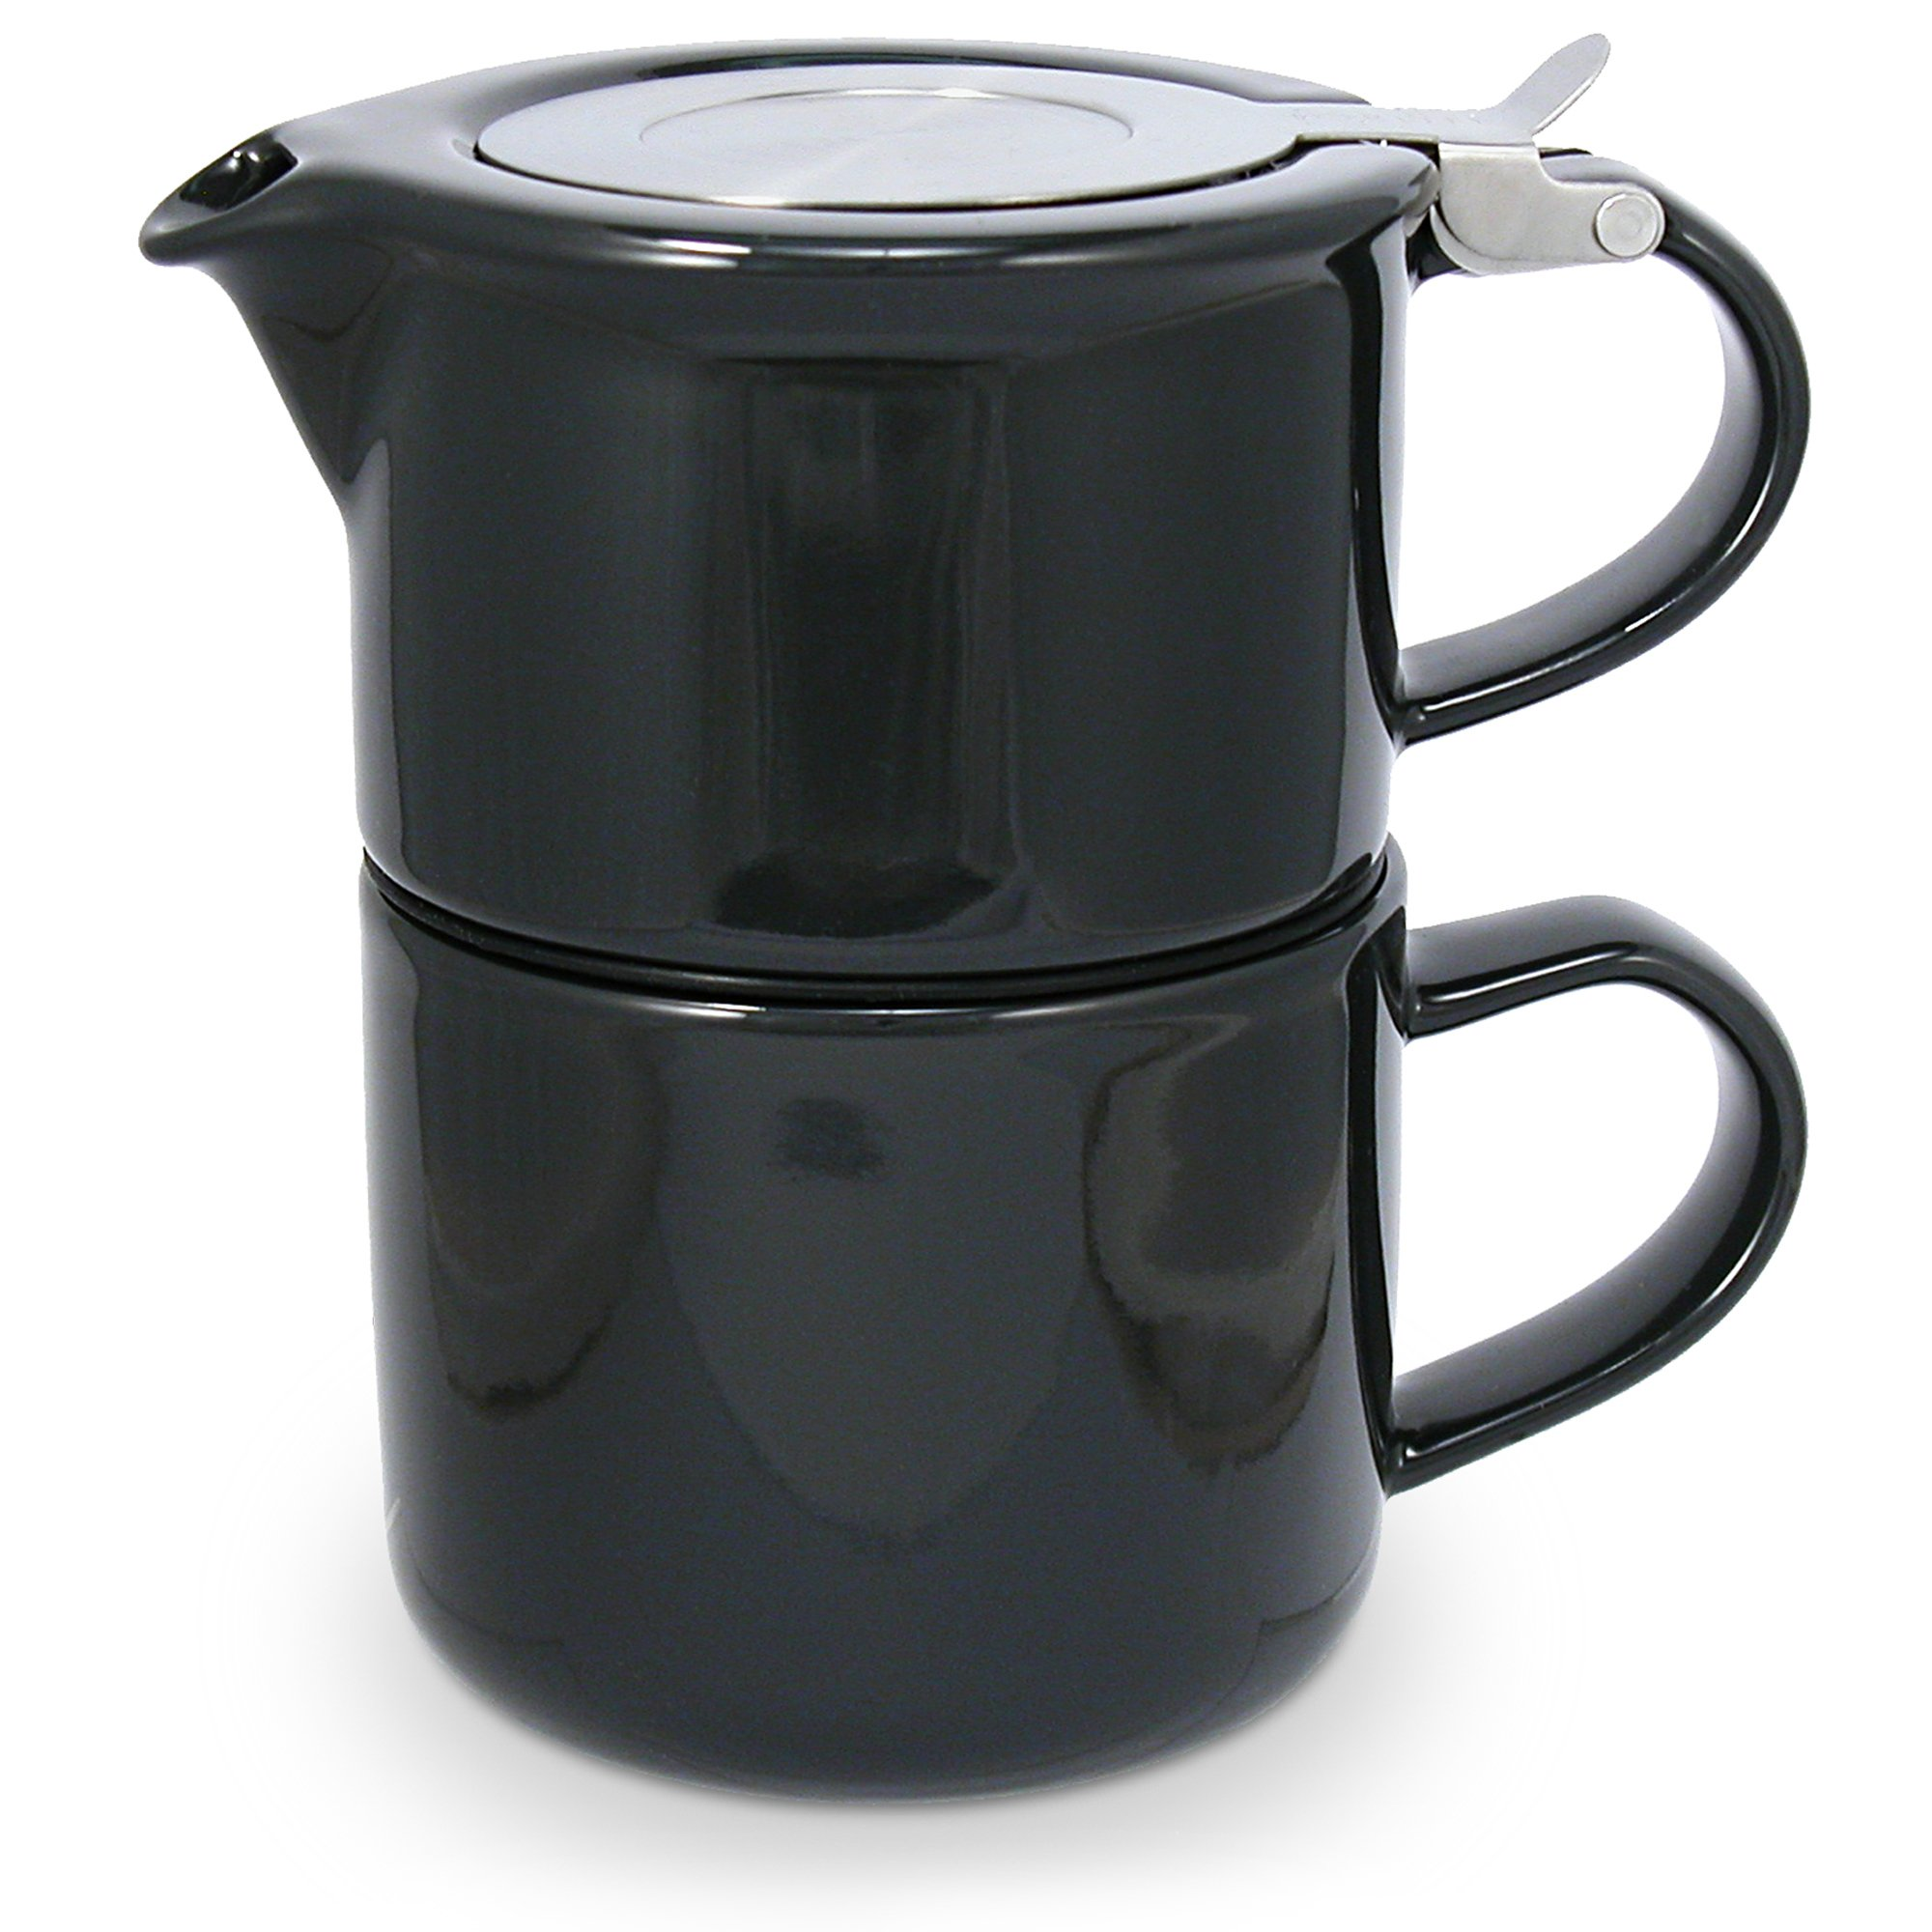 FORLIFE Tea for One with Infuser 14 ounces, Black Graphite by FORLIFE